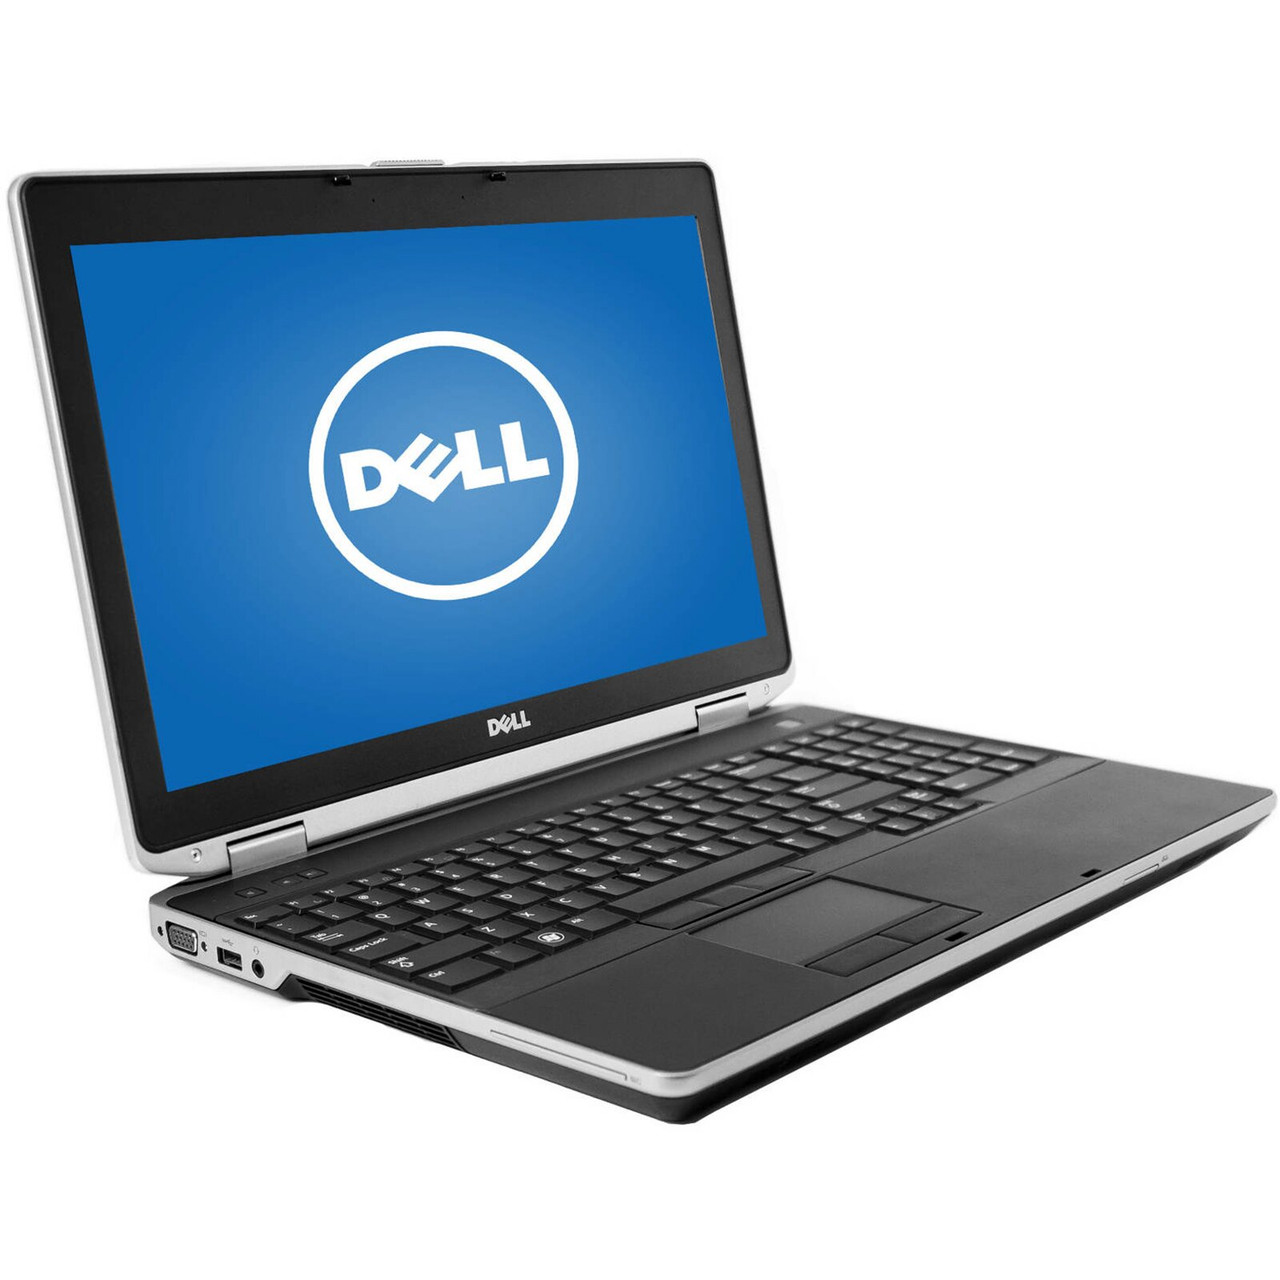 Dell Latitude E6530 Laptop Core i7 2.9GHz, 8GB Ram, 250GB SSD, DVD-RW, Windows 10 Pro 64 Notebook